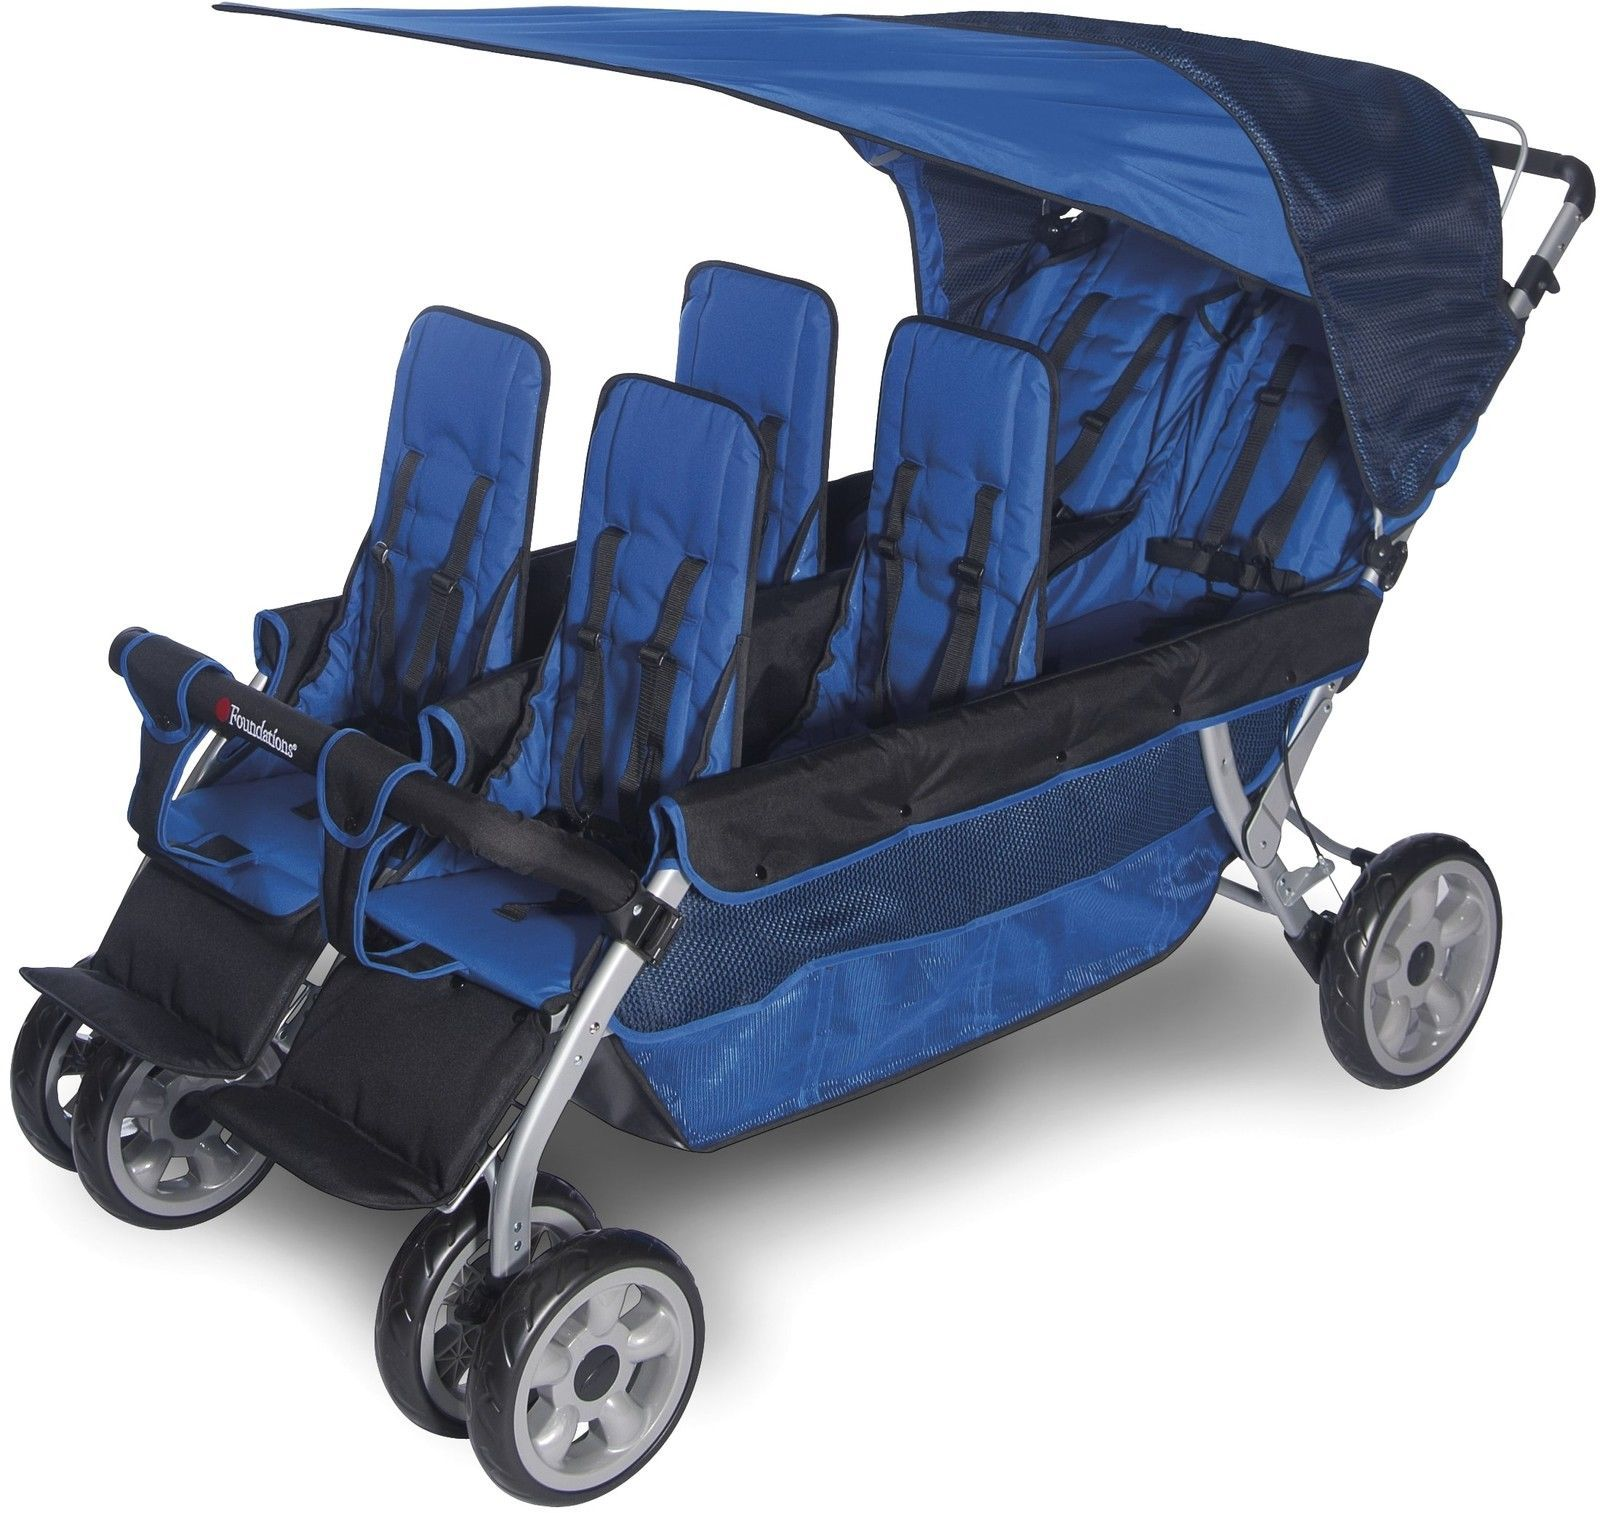 6 Seat Stroller Multiple Child Twin Triplet Quadruplet